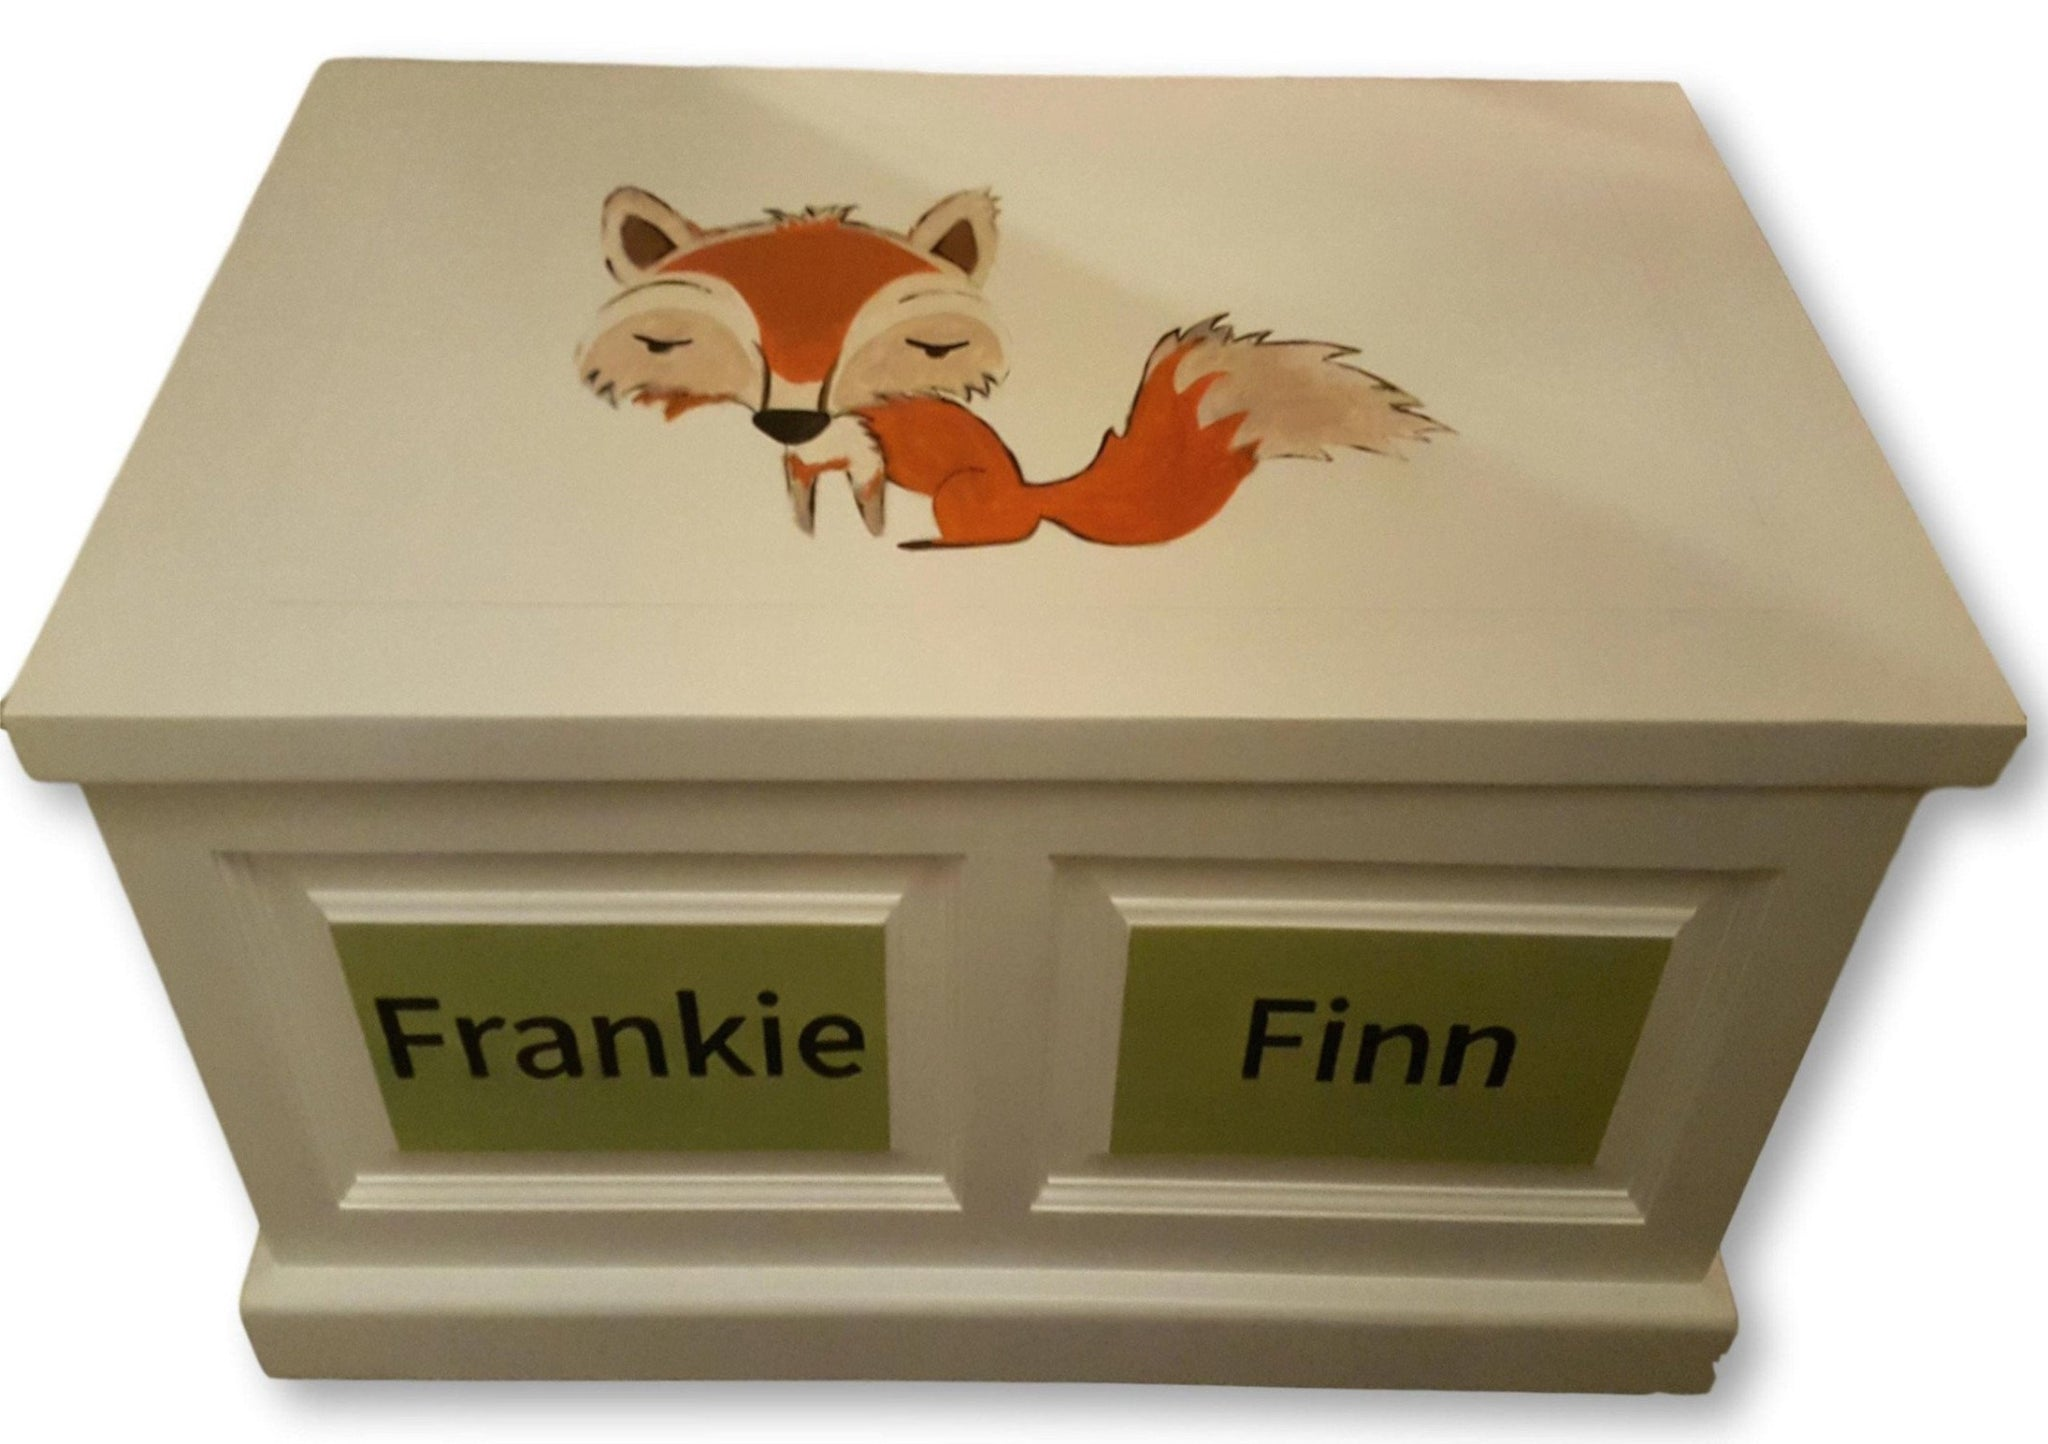 personalised wooden toy box | the twinkle toy box company